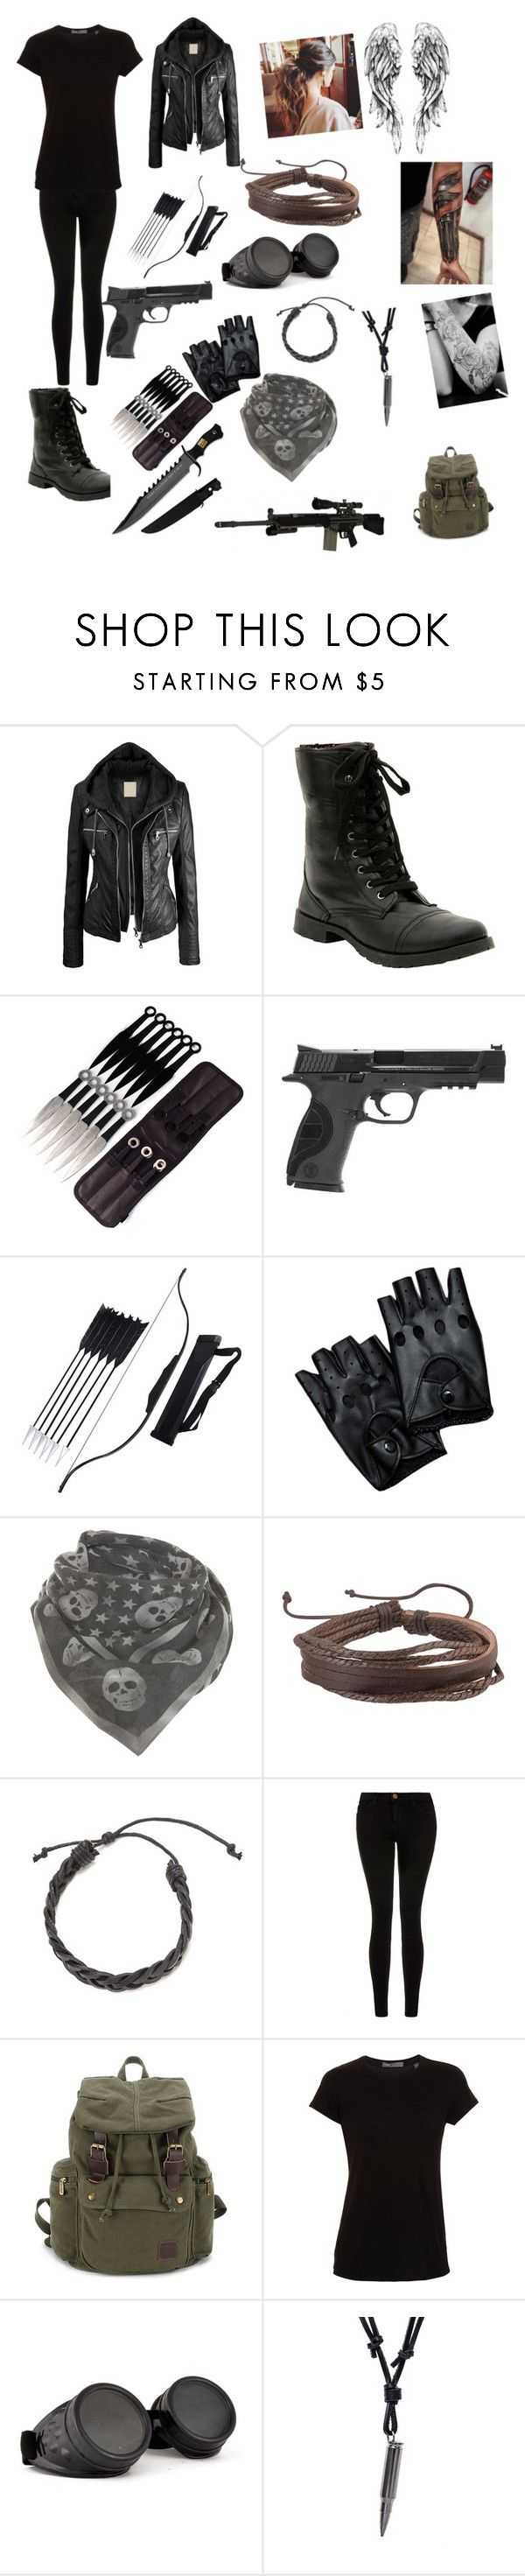 """Z Nation 10k"" by classicrockgirl ❤ liked on Polyvore featuring Smith & Wesson, RIFLE, Miss Selfridge, Zodaca, Current/Elliott, Vince, GAS Jeans, women's clothing, women and female"